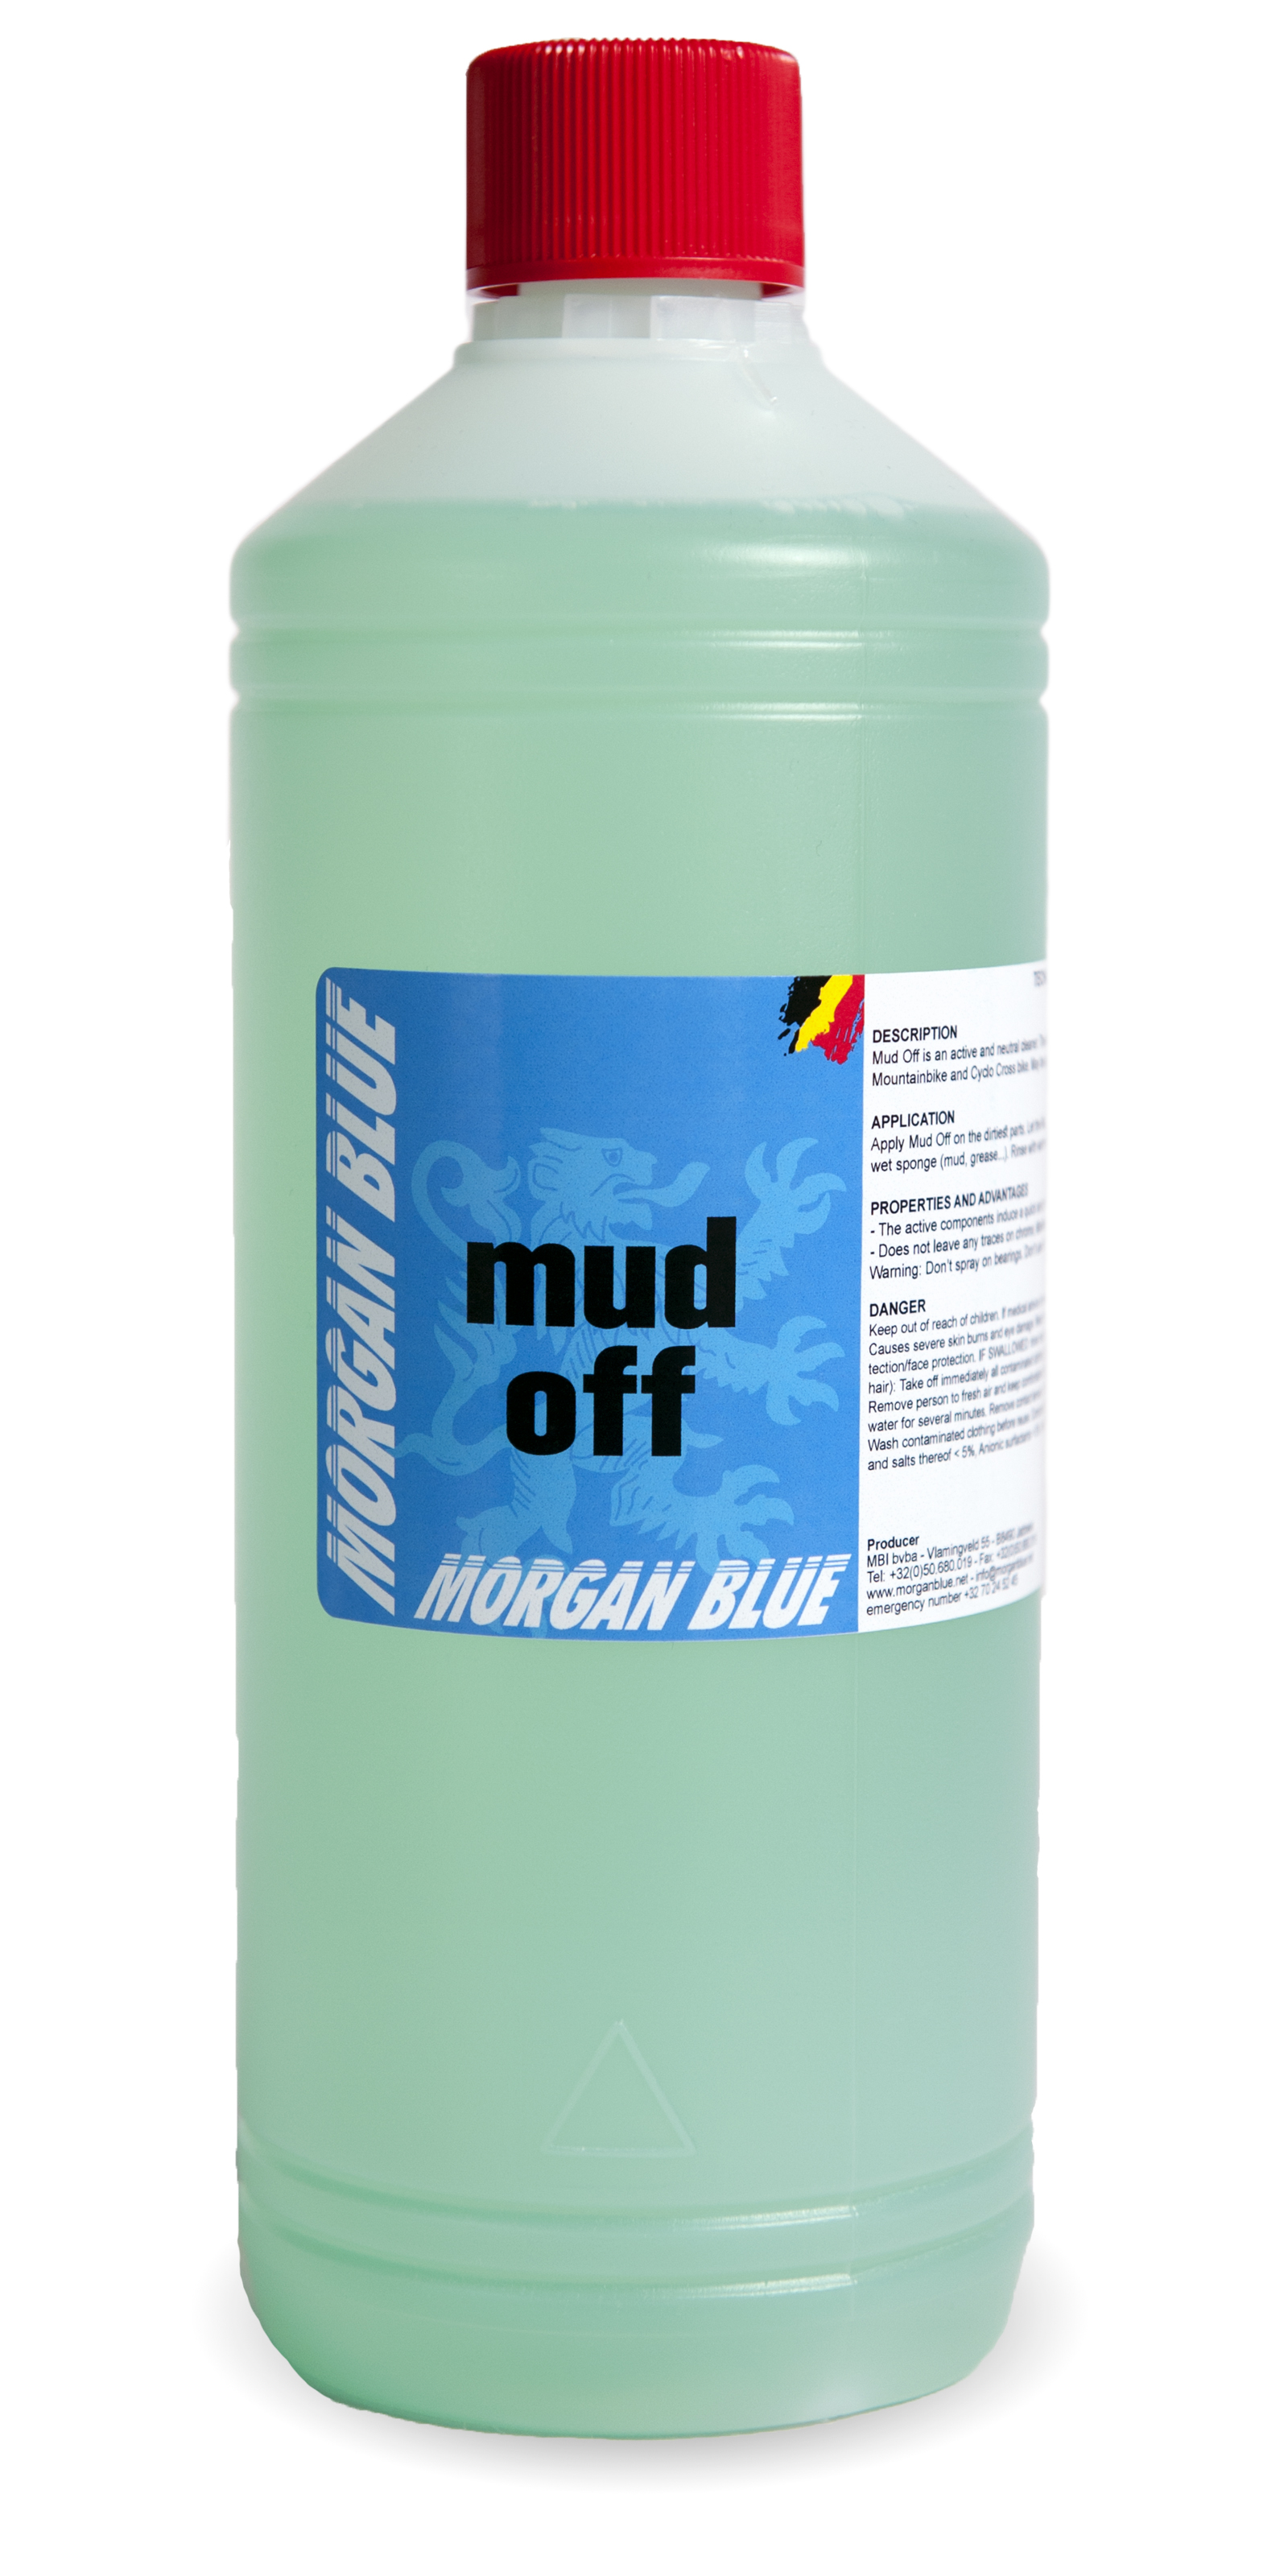 mud_off_1000ml_trans-(1)